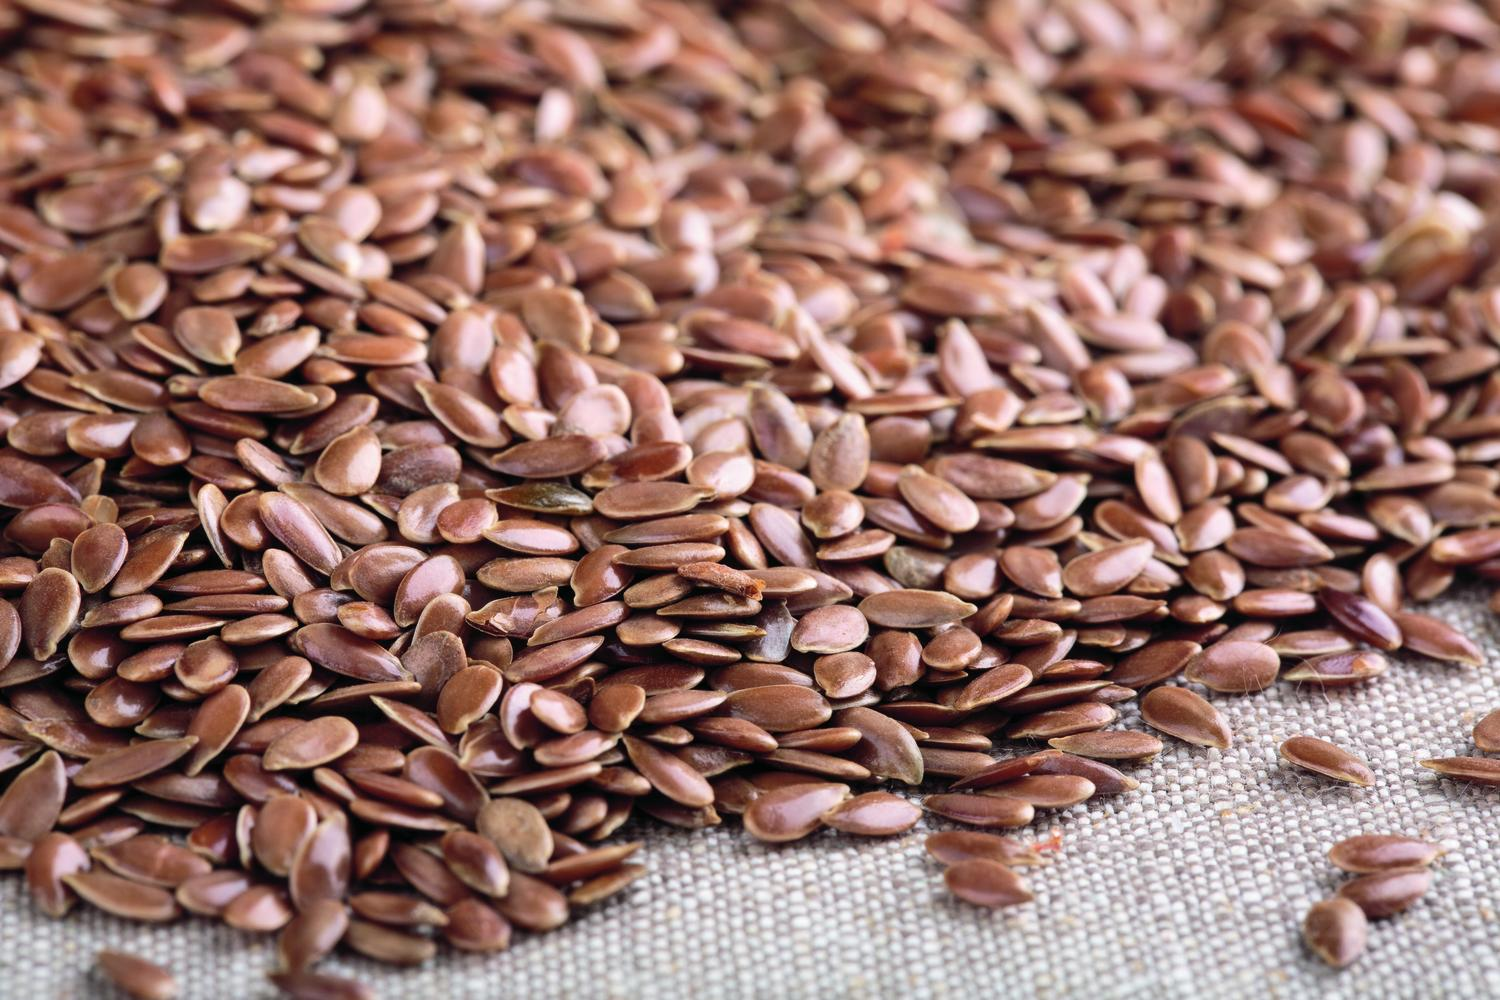 Linseed used on the production of our Linoleum flooring